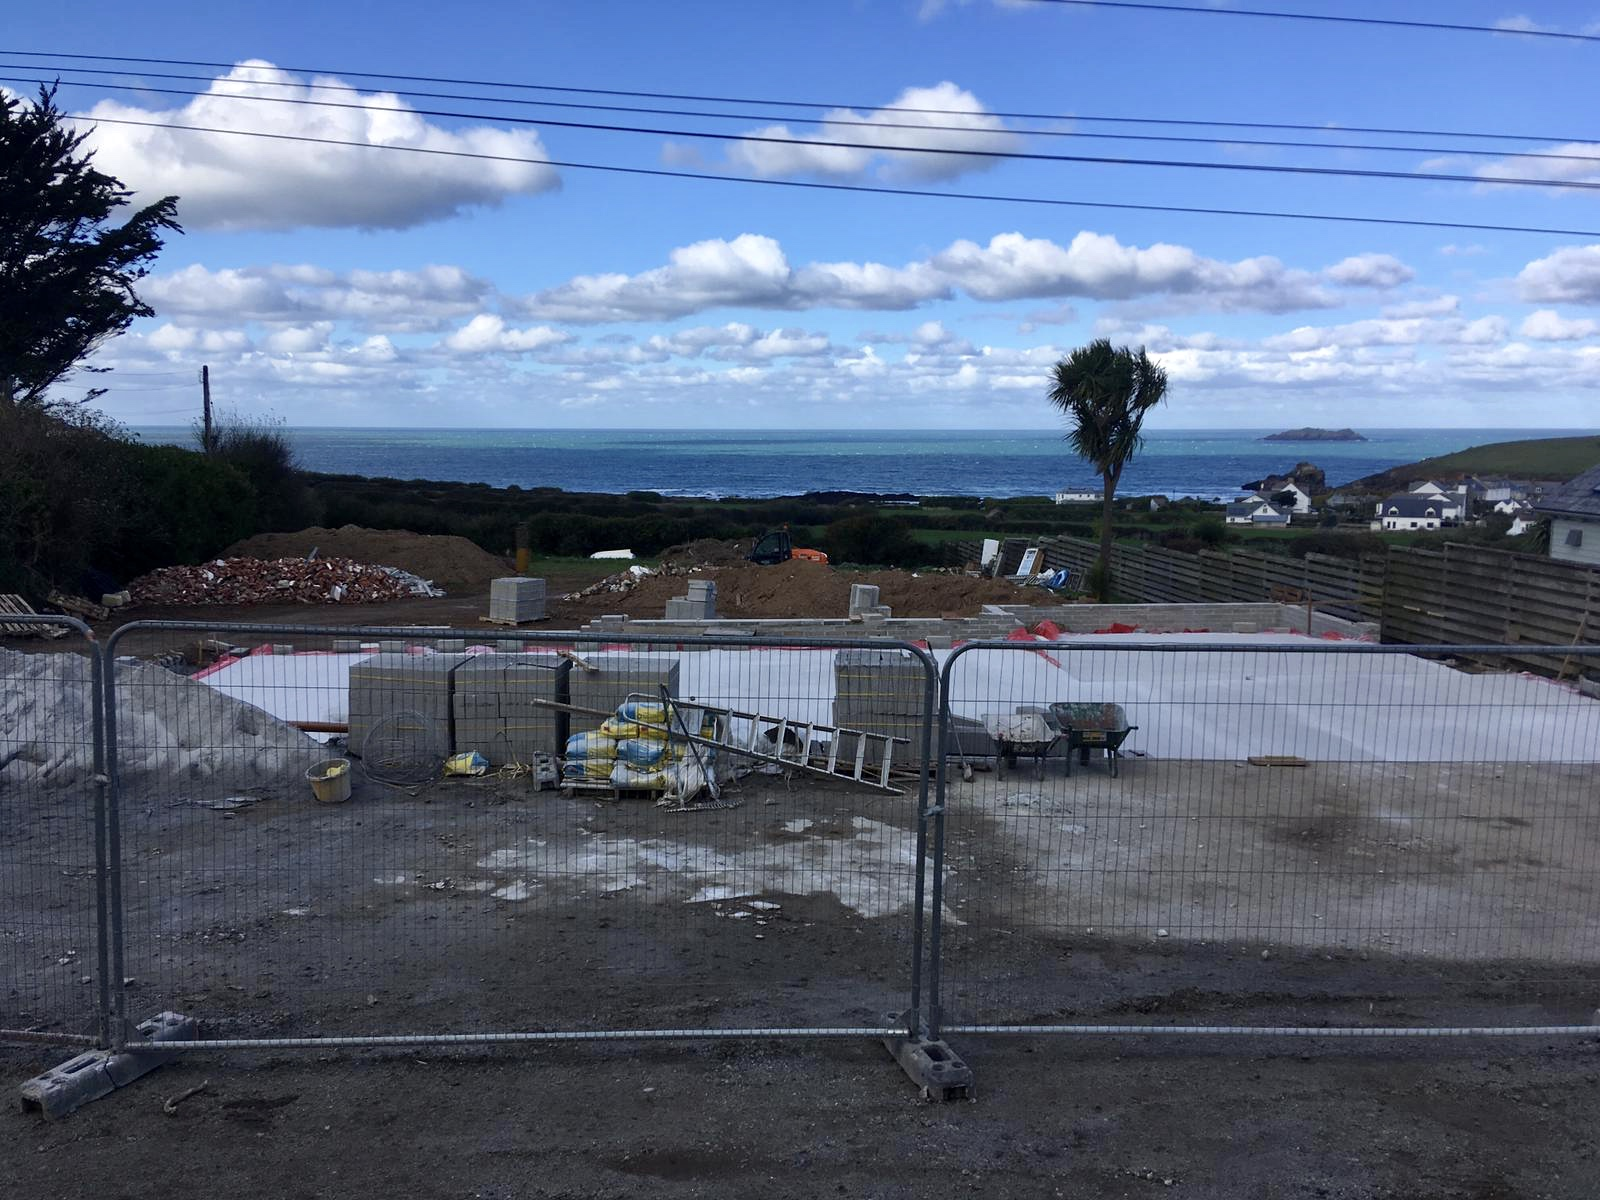 Concrete Slab is Dry! (October 28th 2018)